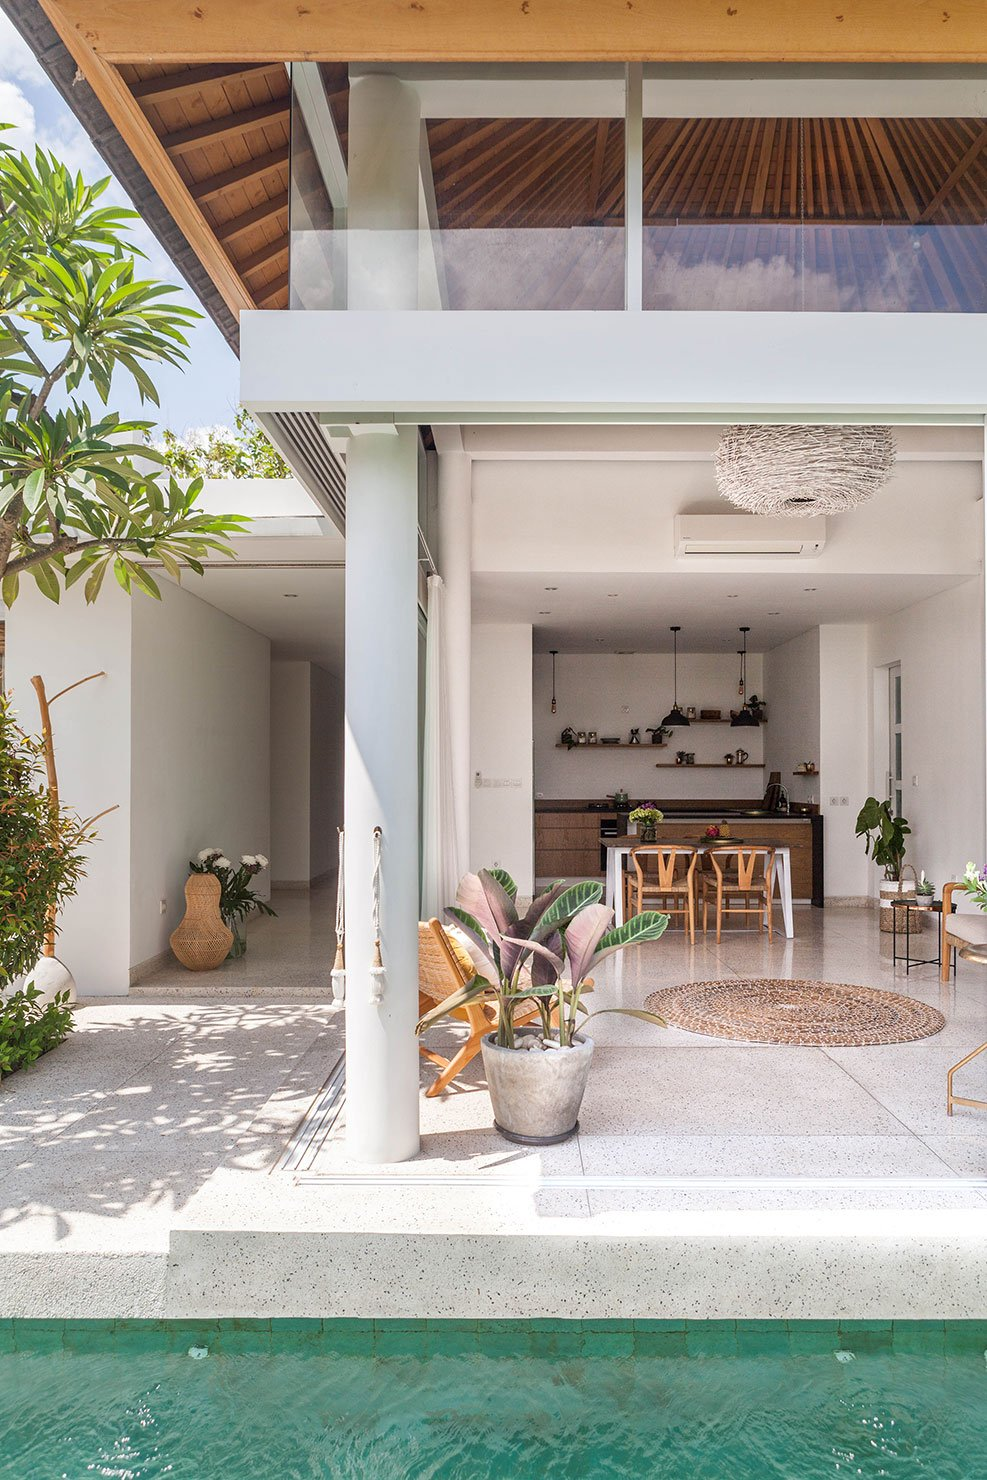 Bali Interiors Canggu homewares